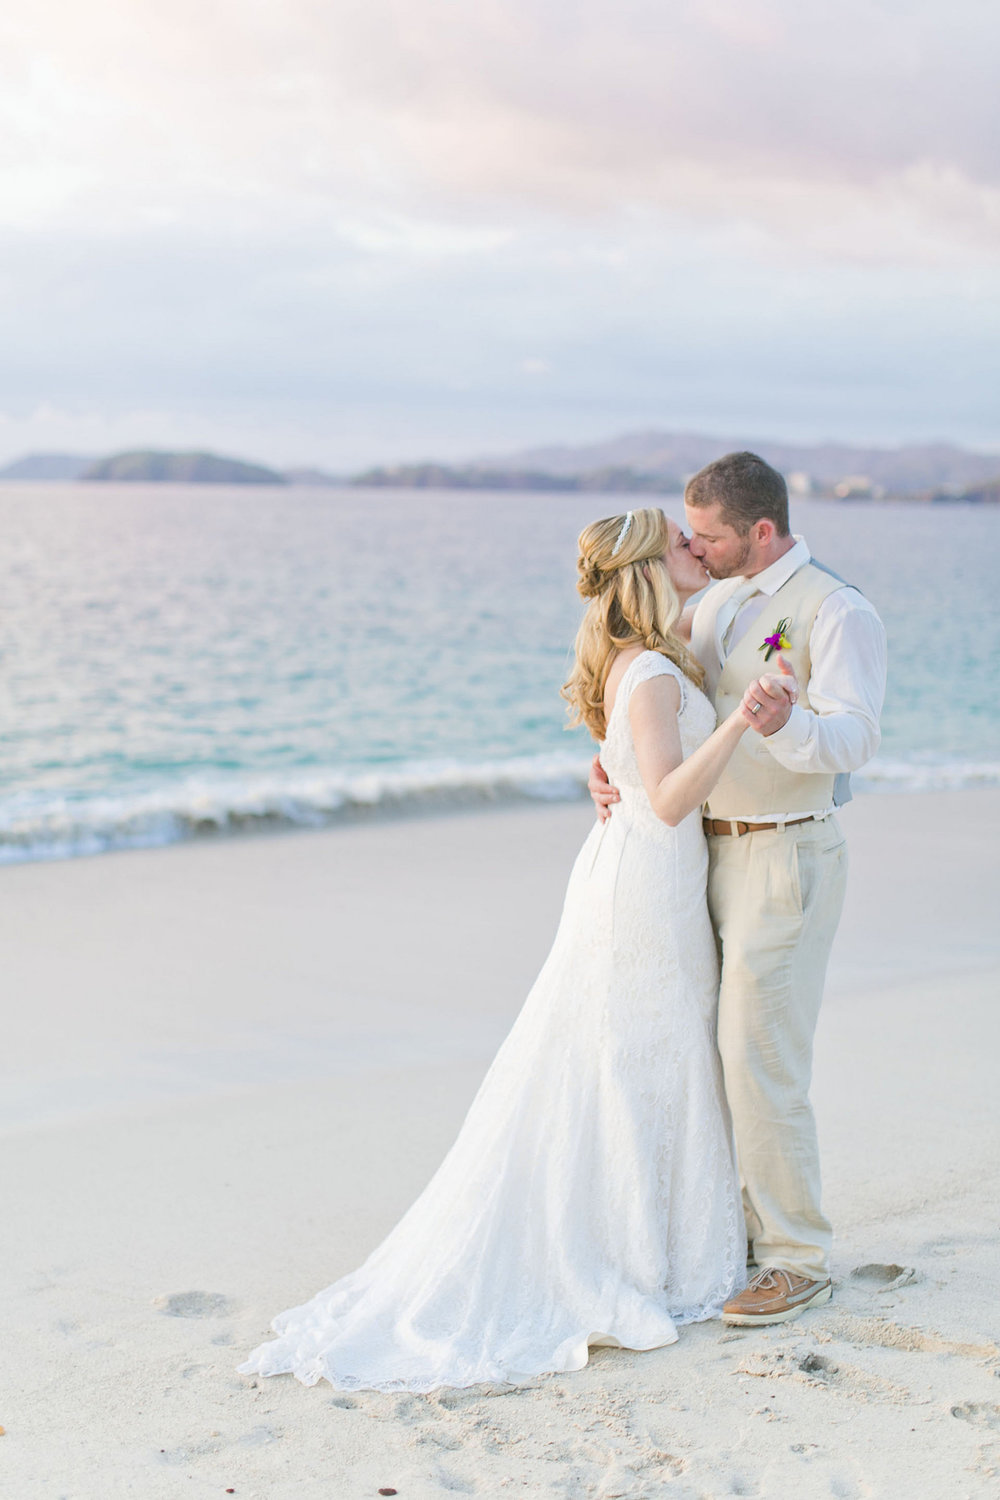 COSTA RICA DESTINATION WEDDING: ALISA + STEVE